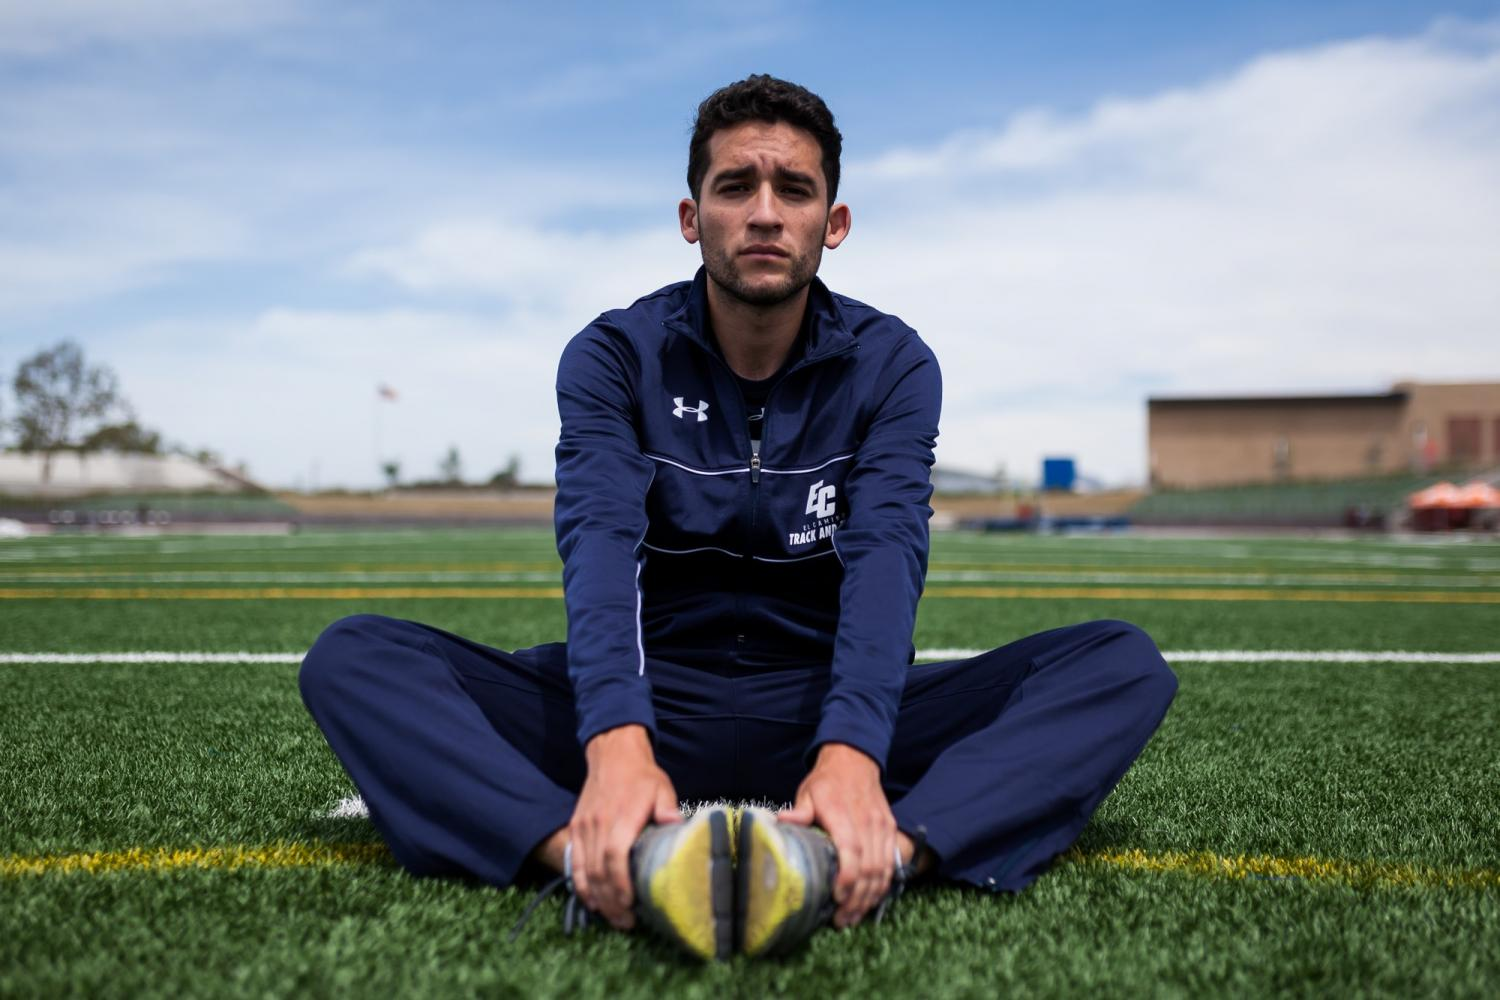 El Camino distance runner is back on the track after a two-year Mormon mission